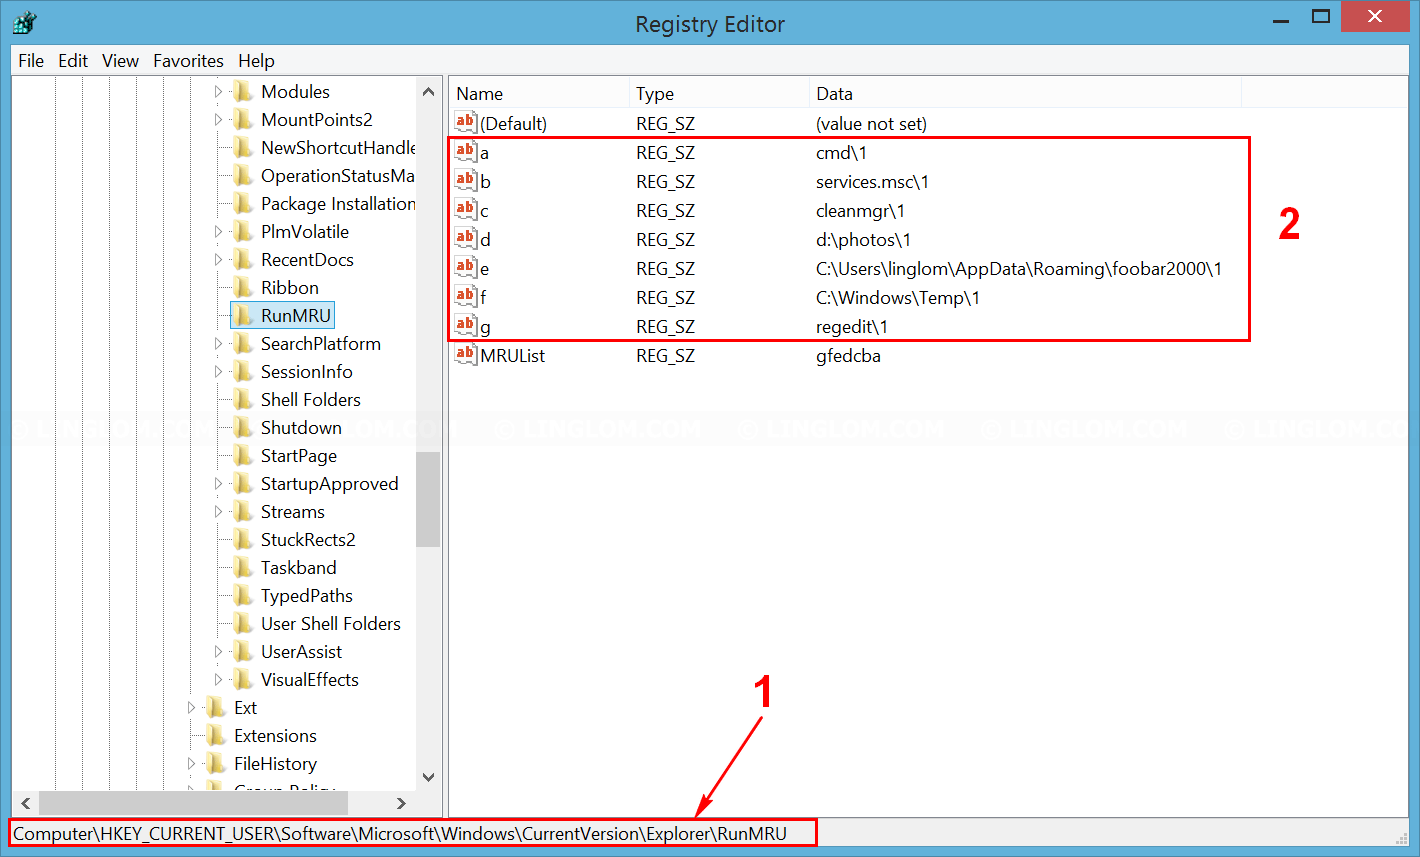 Run history in registry editor